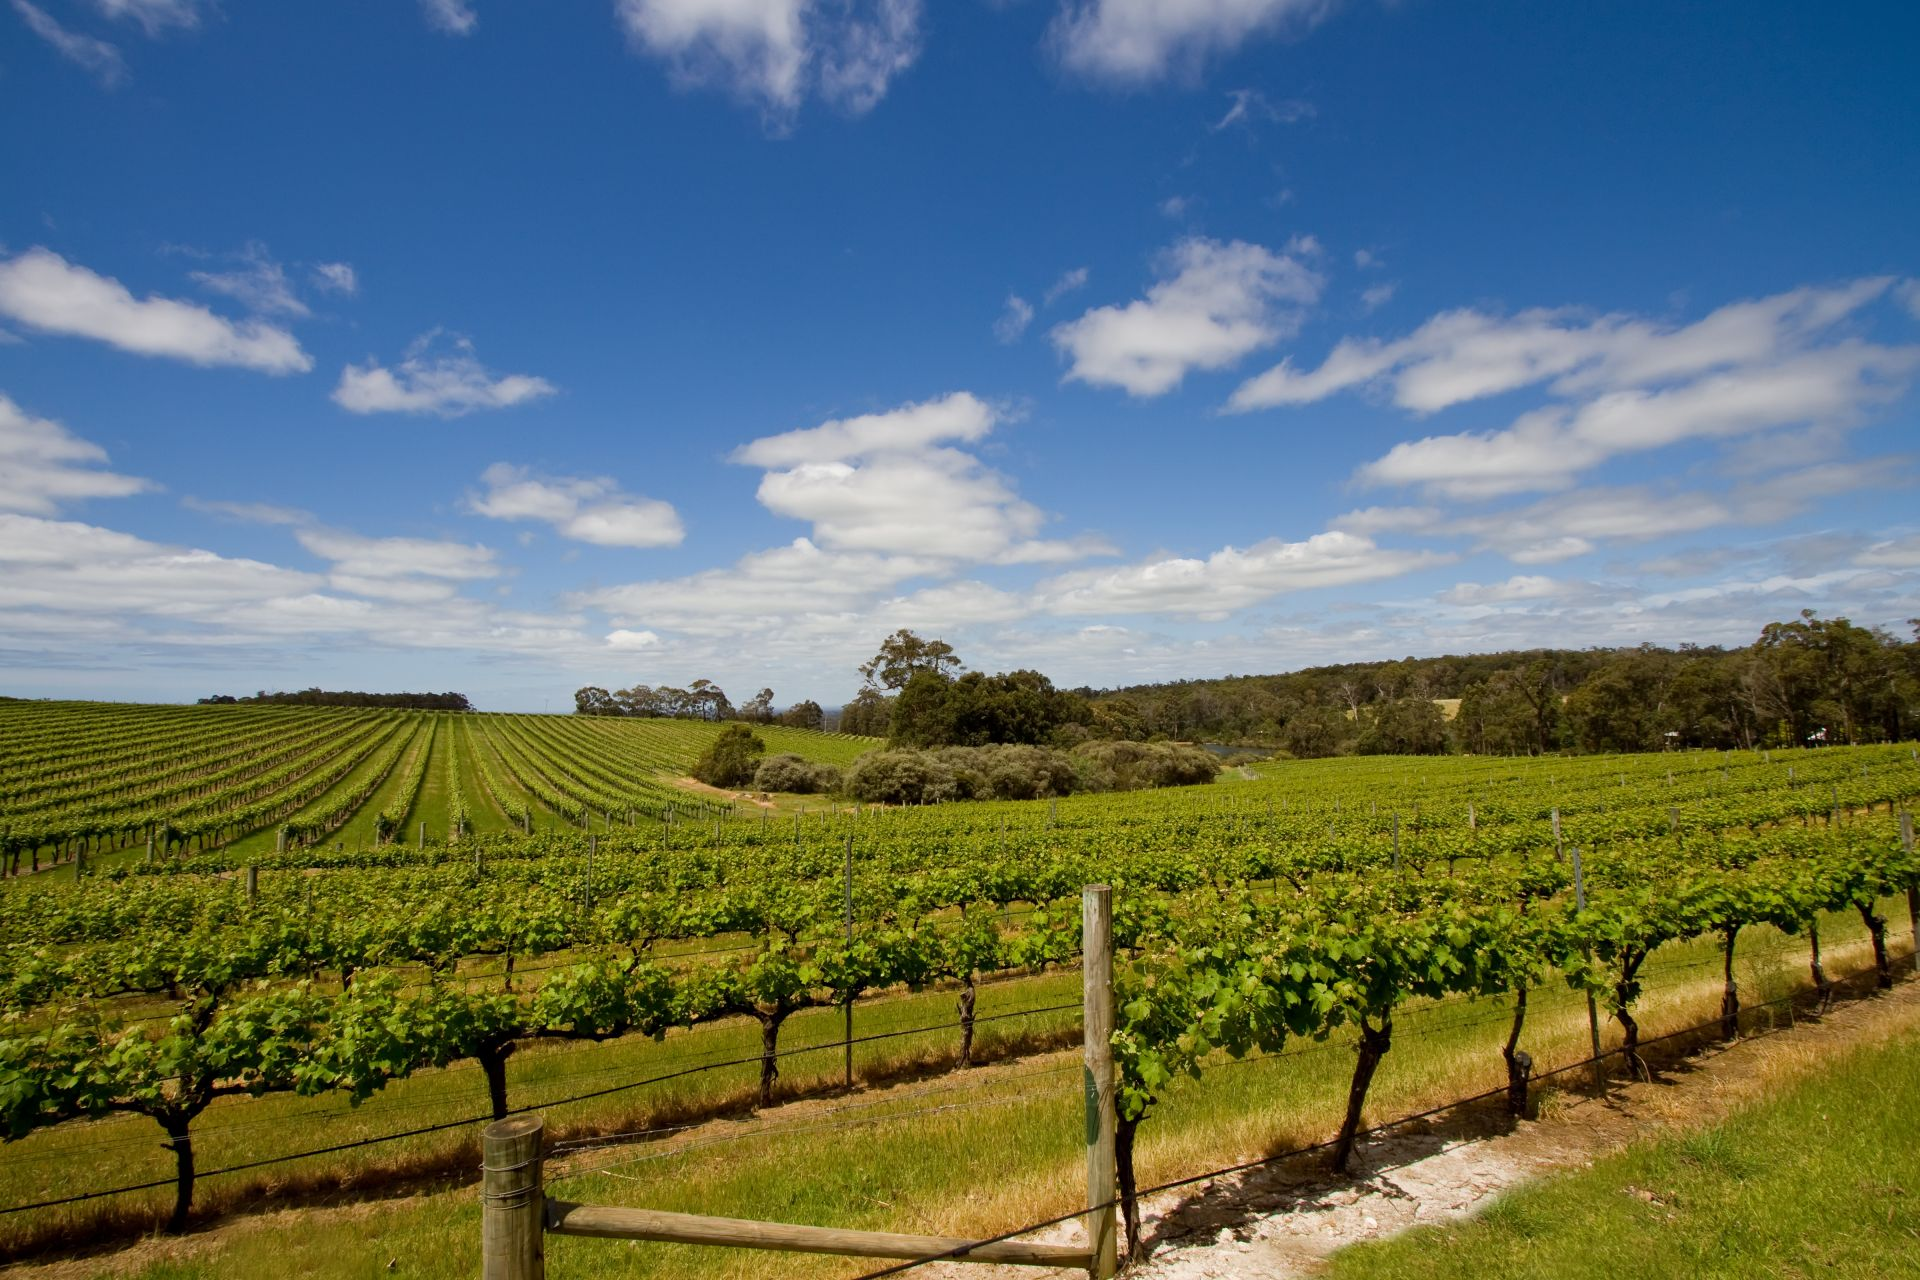 Margaret river region